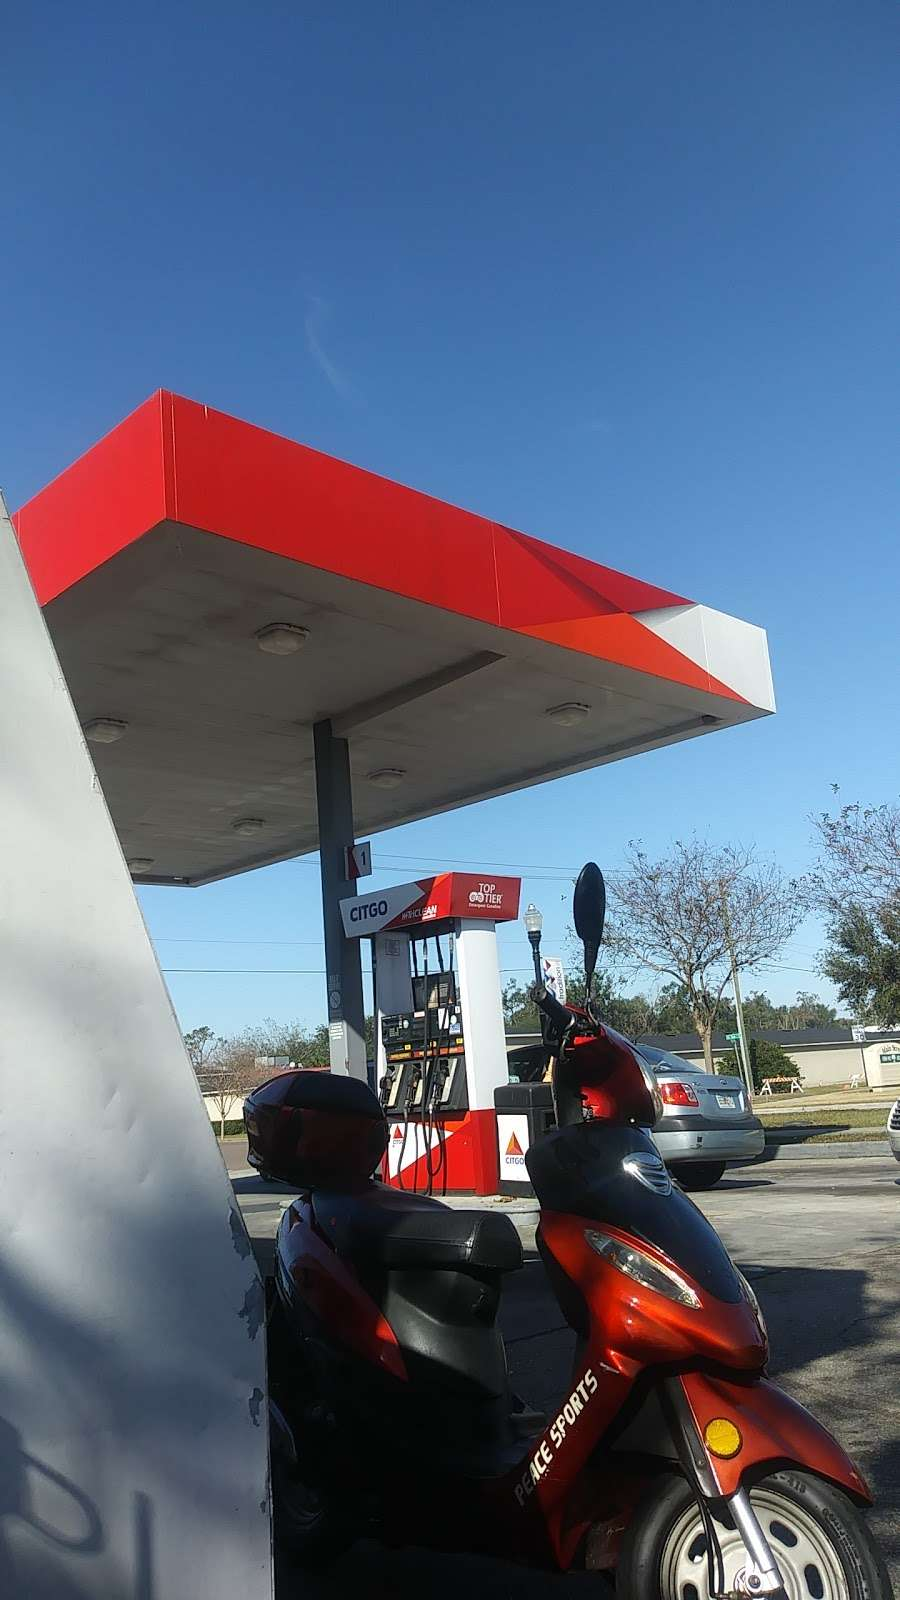 Qp Citgo - convenience store  | Photo 1 of 1 | Address: 795 W Main St, Bartow, FL 33830, USA | Phone: (863) 533-5704